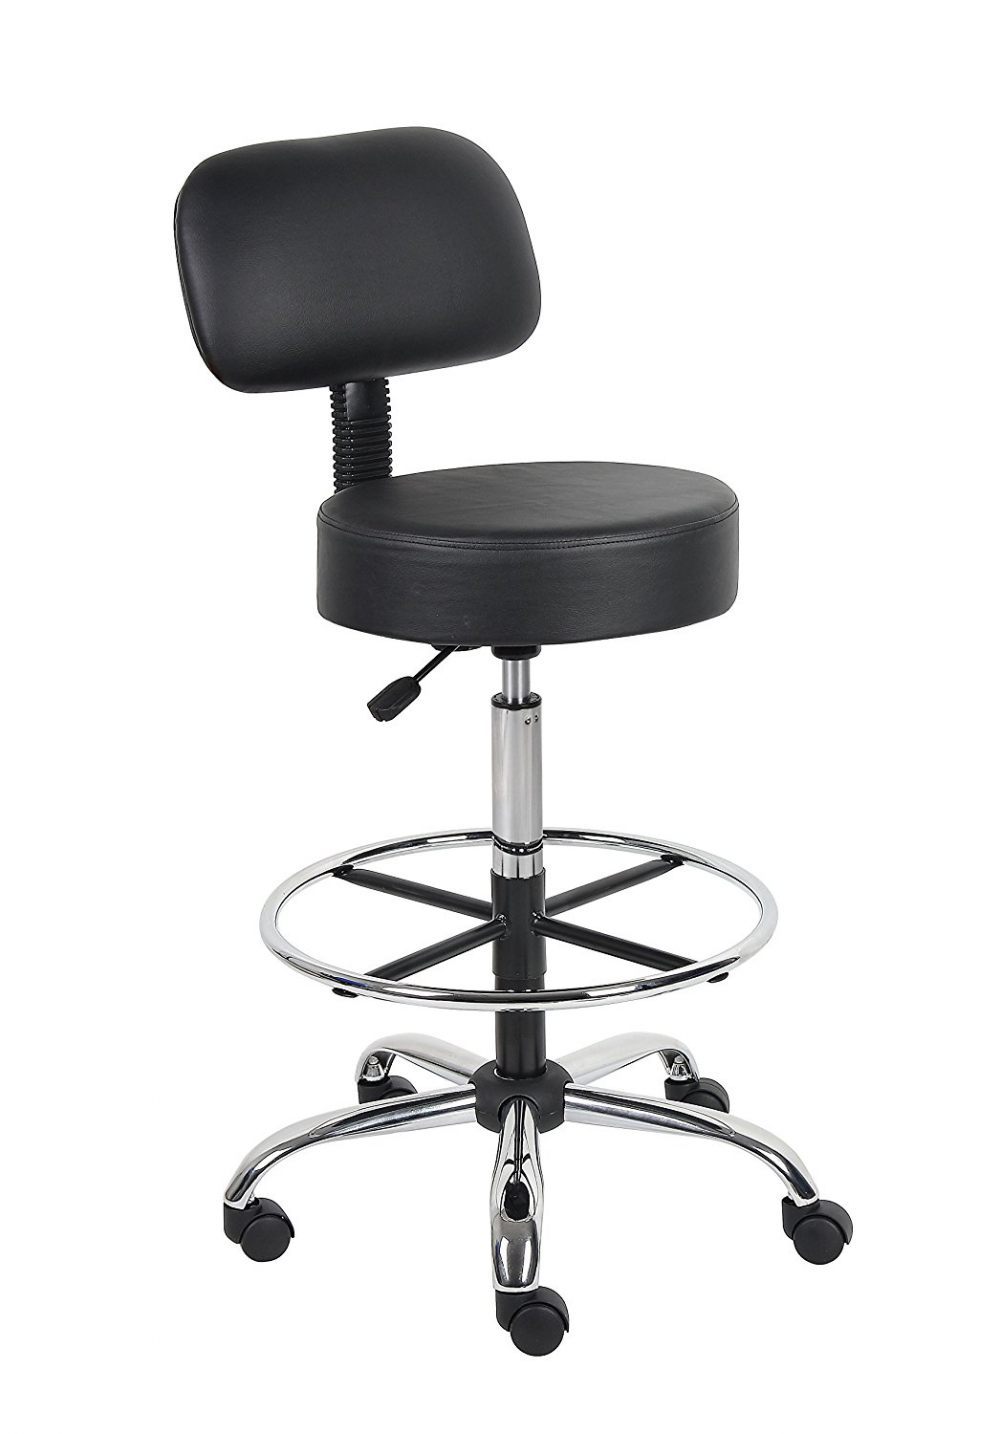 Strange Medical Exam Stool With Back Lab Drafting Chair Adjustable Onthecornerstone Fun Painted Chair Ideas Images Onthecornerstoneorg